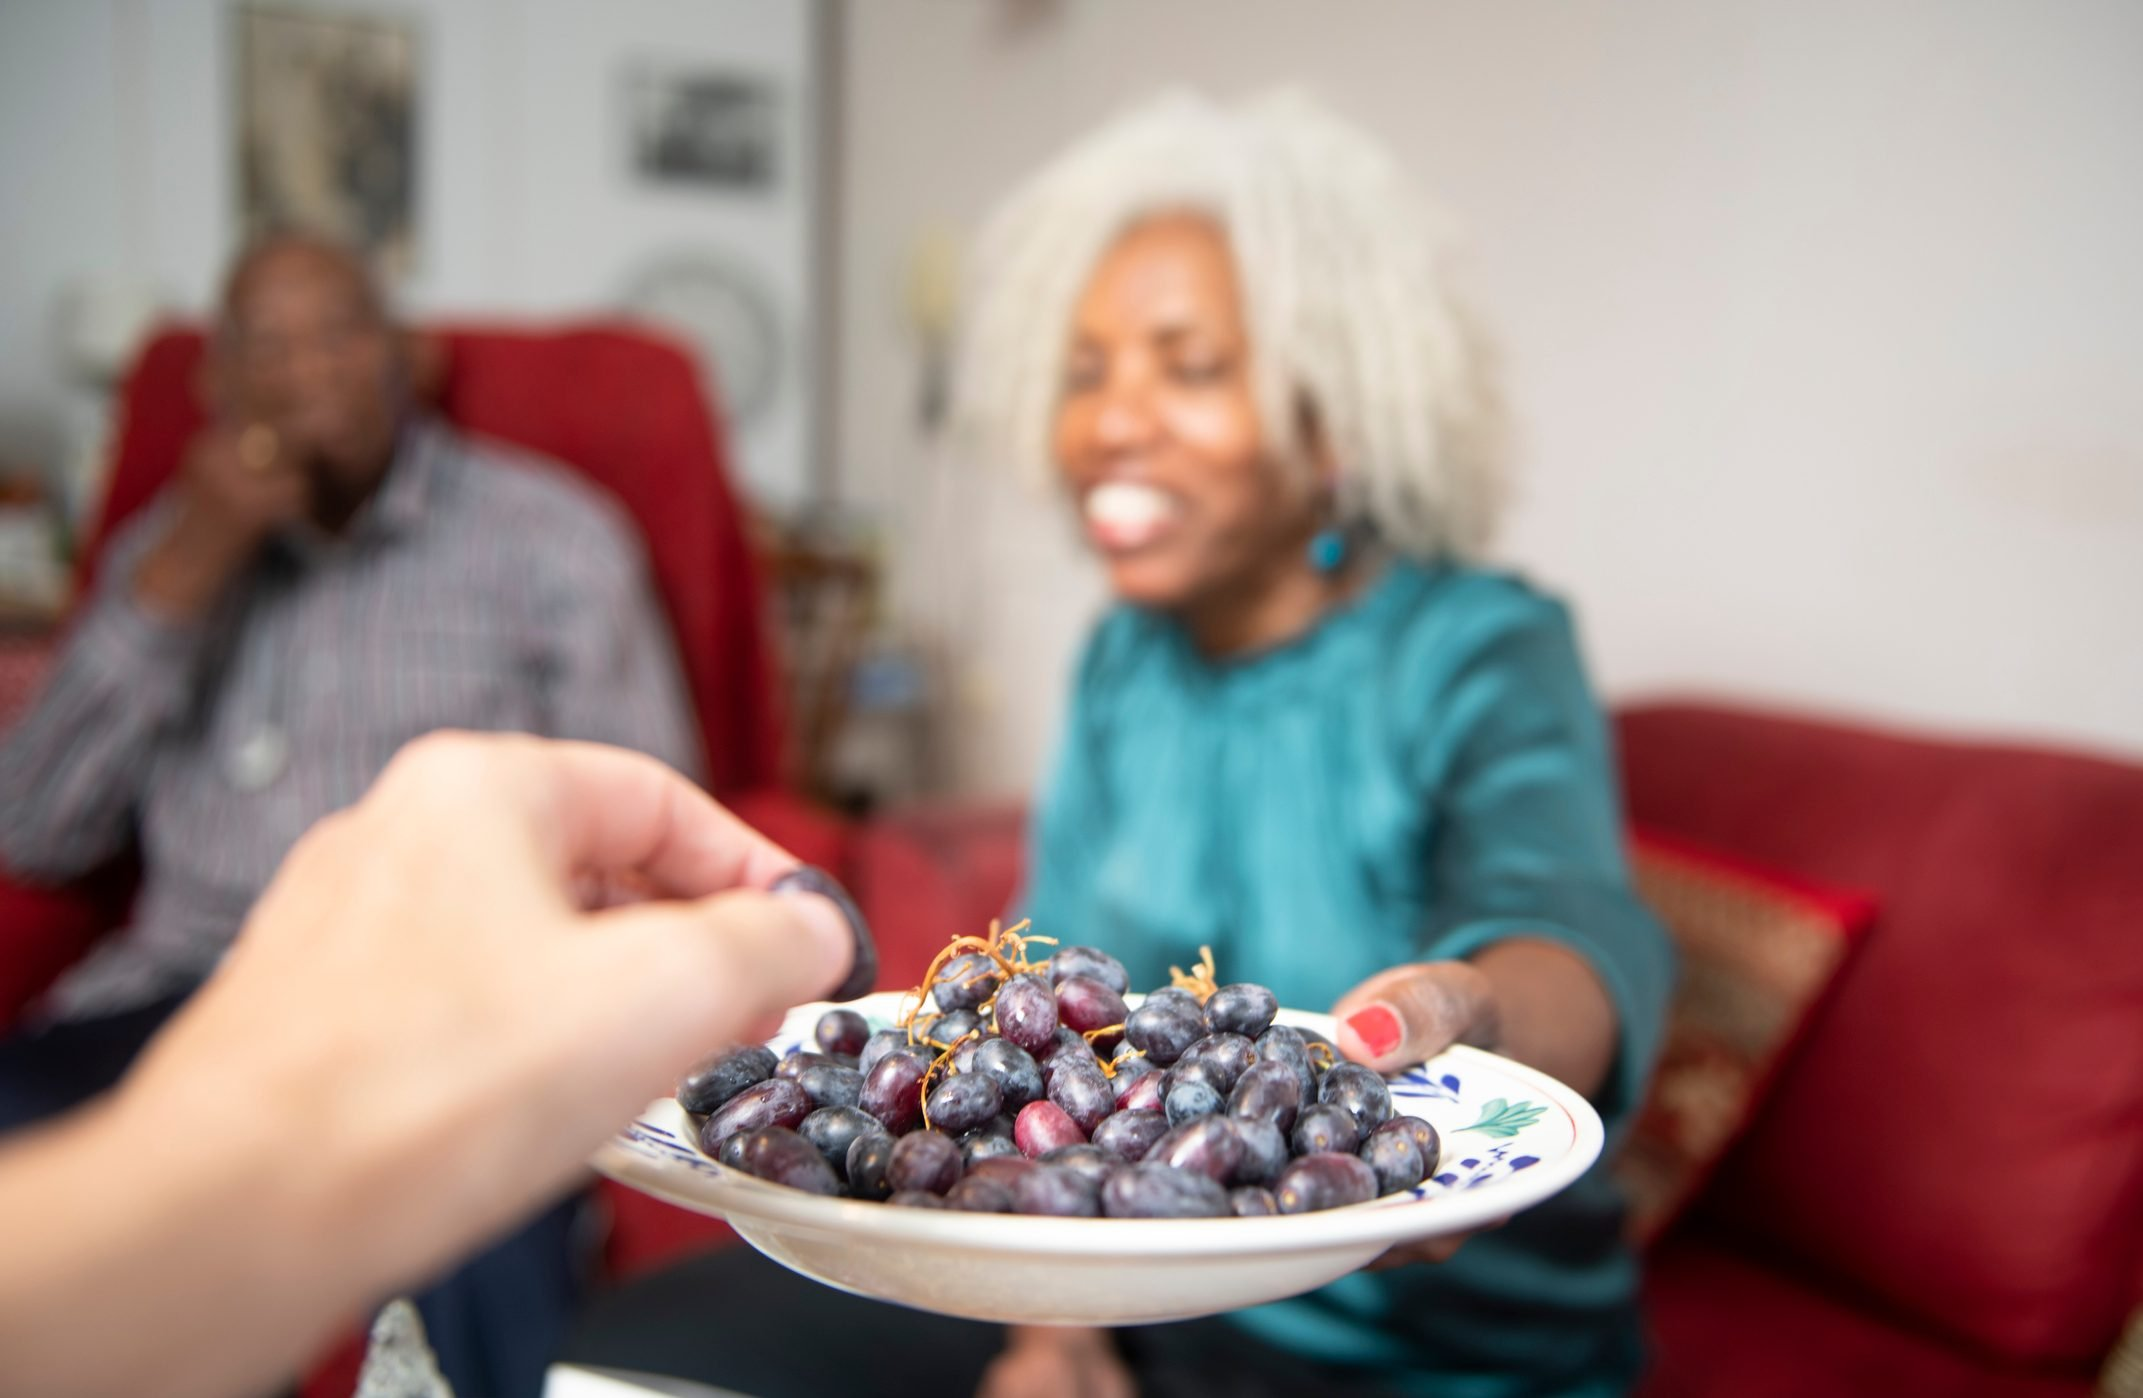 Personal view of a guest being offered grapes by a kind and beautiful senior woman